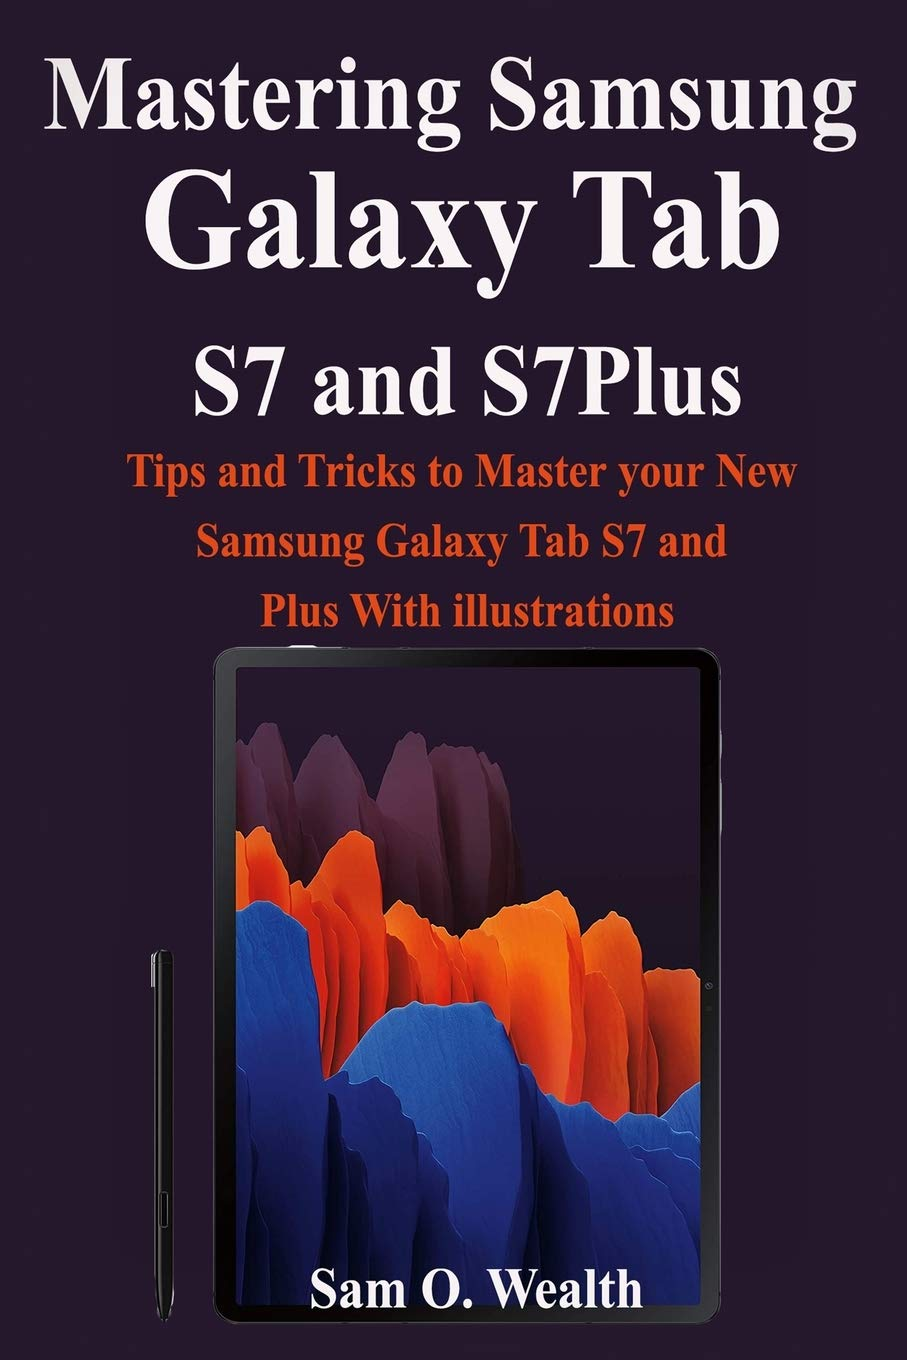 Mastering Samsung Galaxy Tab S7 And S7plus Tips And Tricks To Master Your New Samsung Galaxy Tab S7 And Plus With Illustrations Wealth Sam O 9798683649265 Amazon Com Books